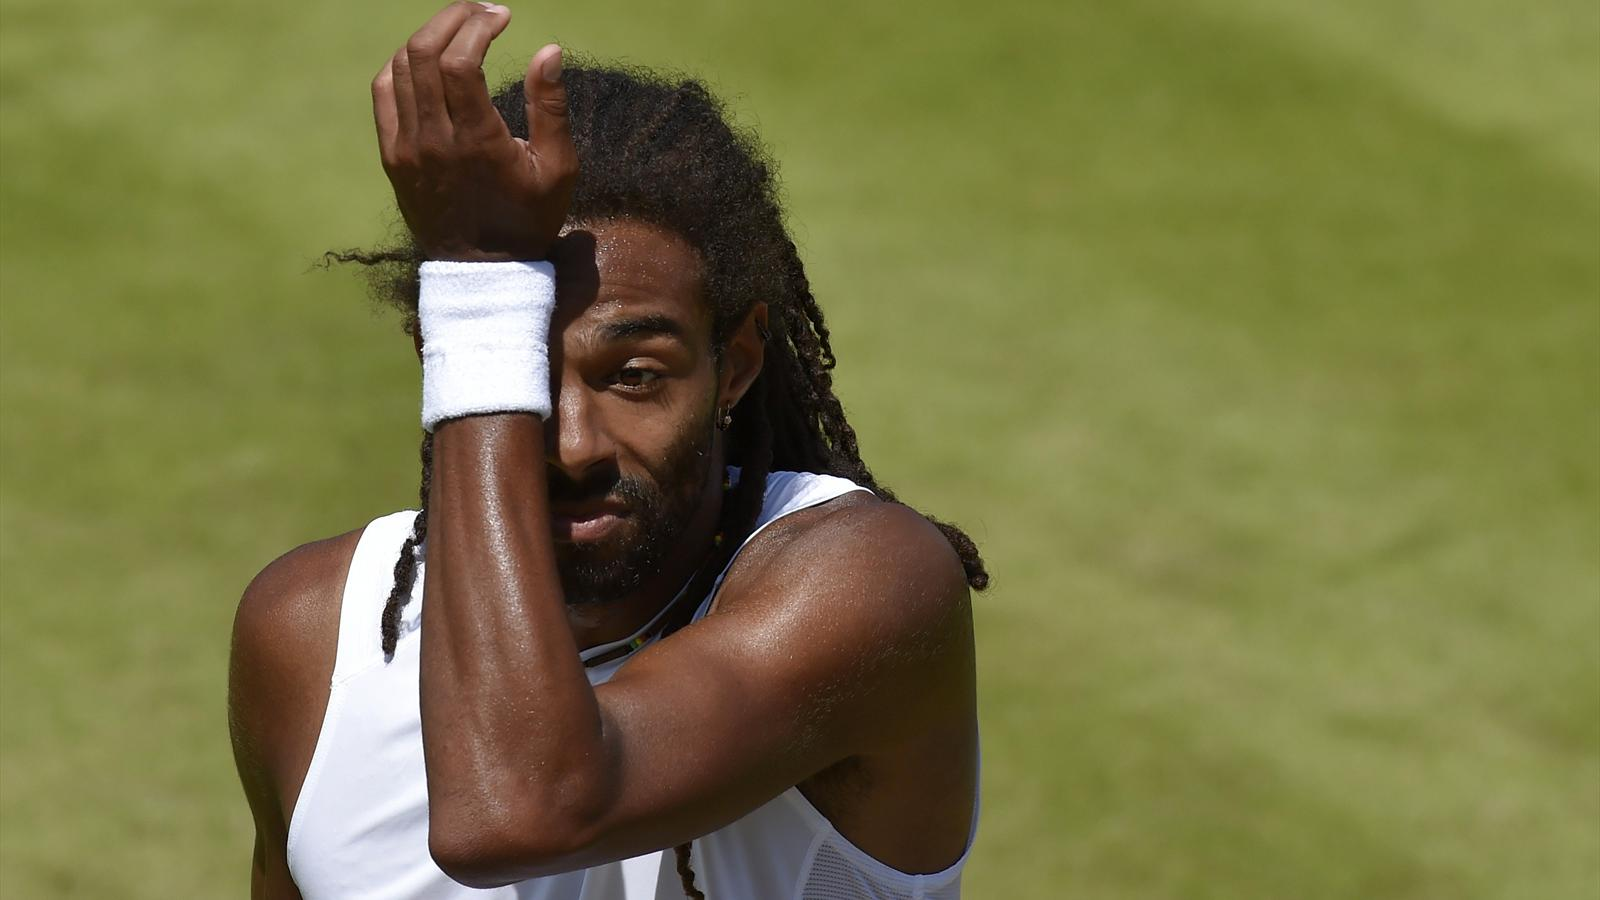 Dustin Brown of Germany wipes his face during his match against Viktor Troicki